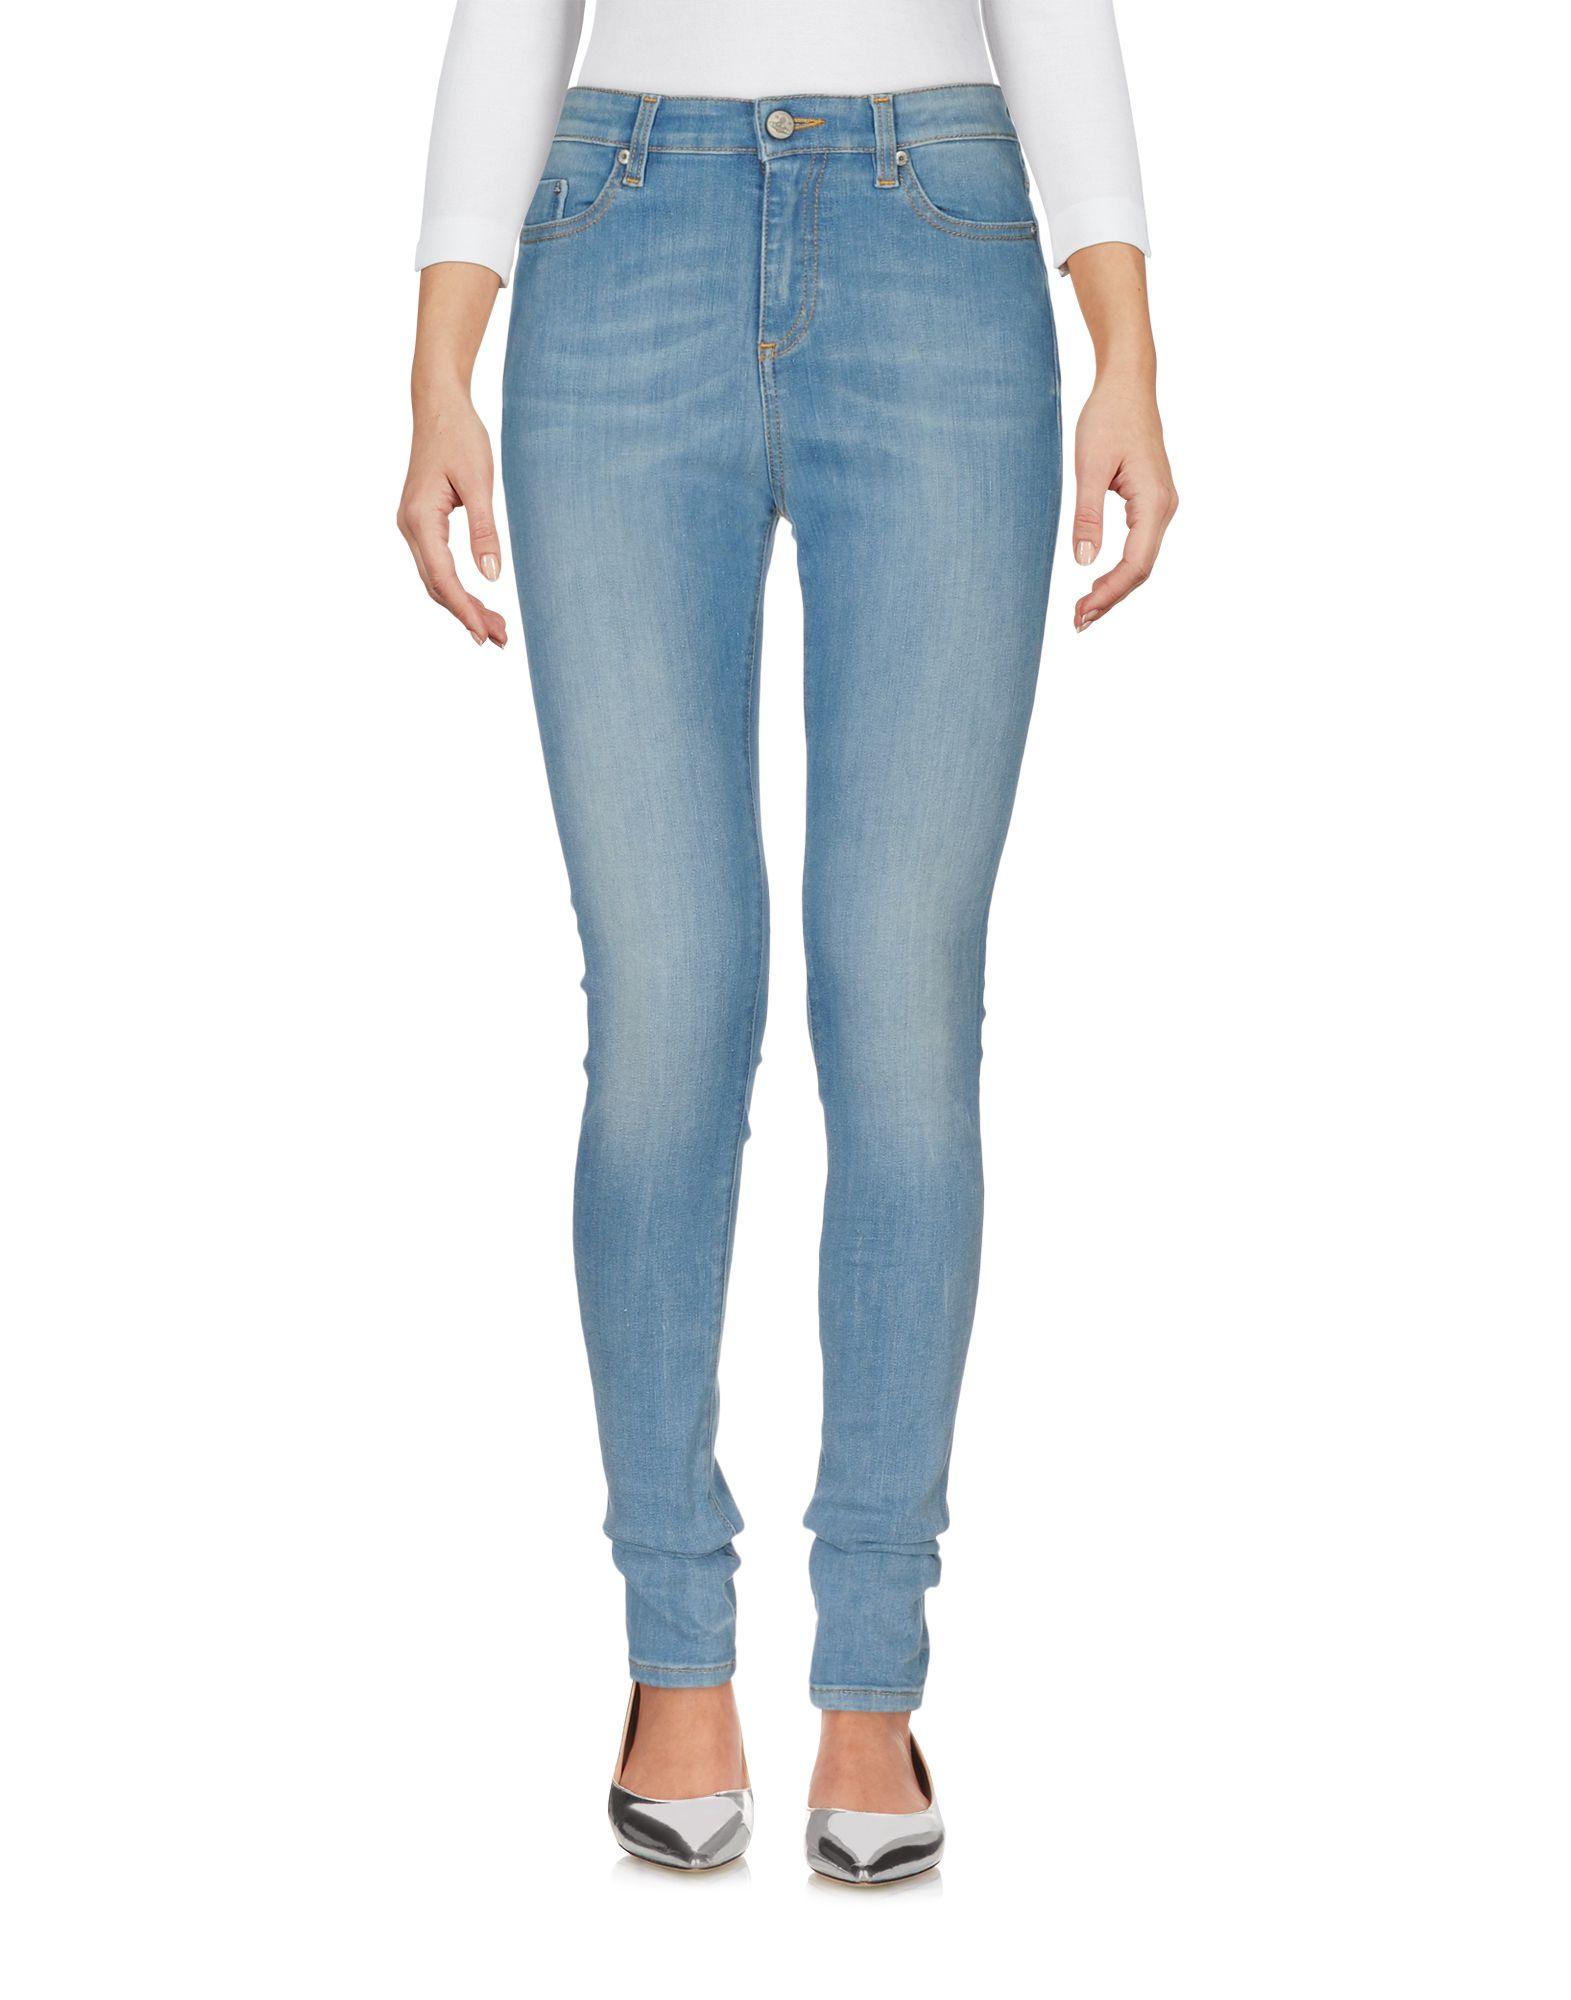 Pantaloni Jeans Vivienne Westwood Anglomania Donna - Acquista online su uy8wpr